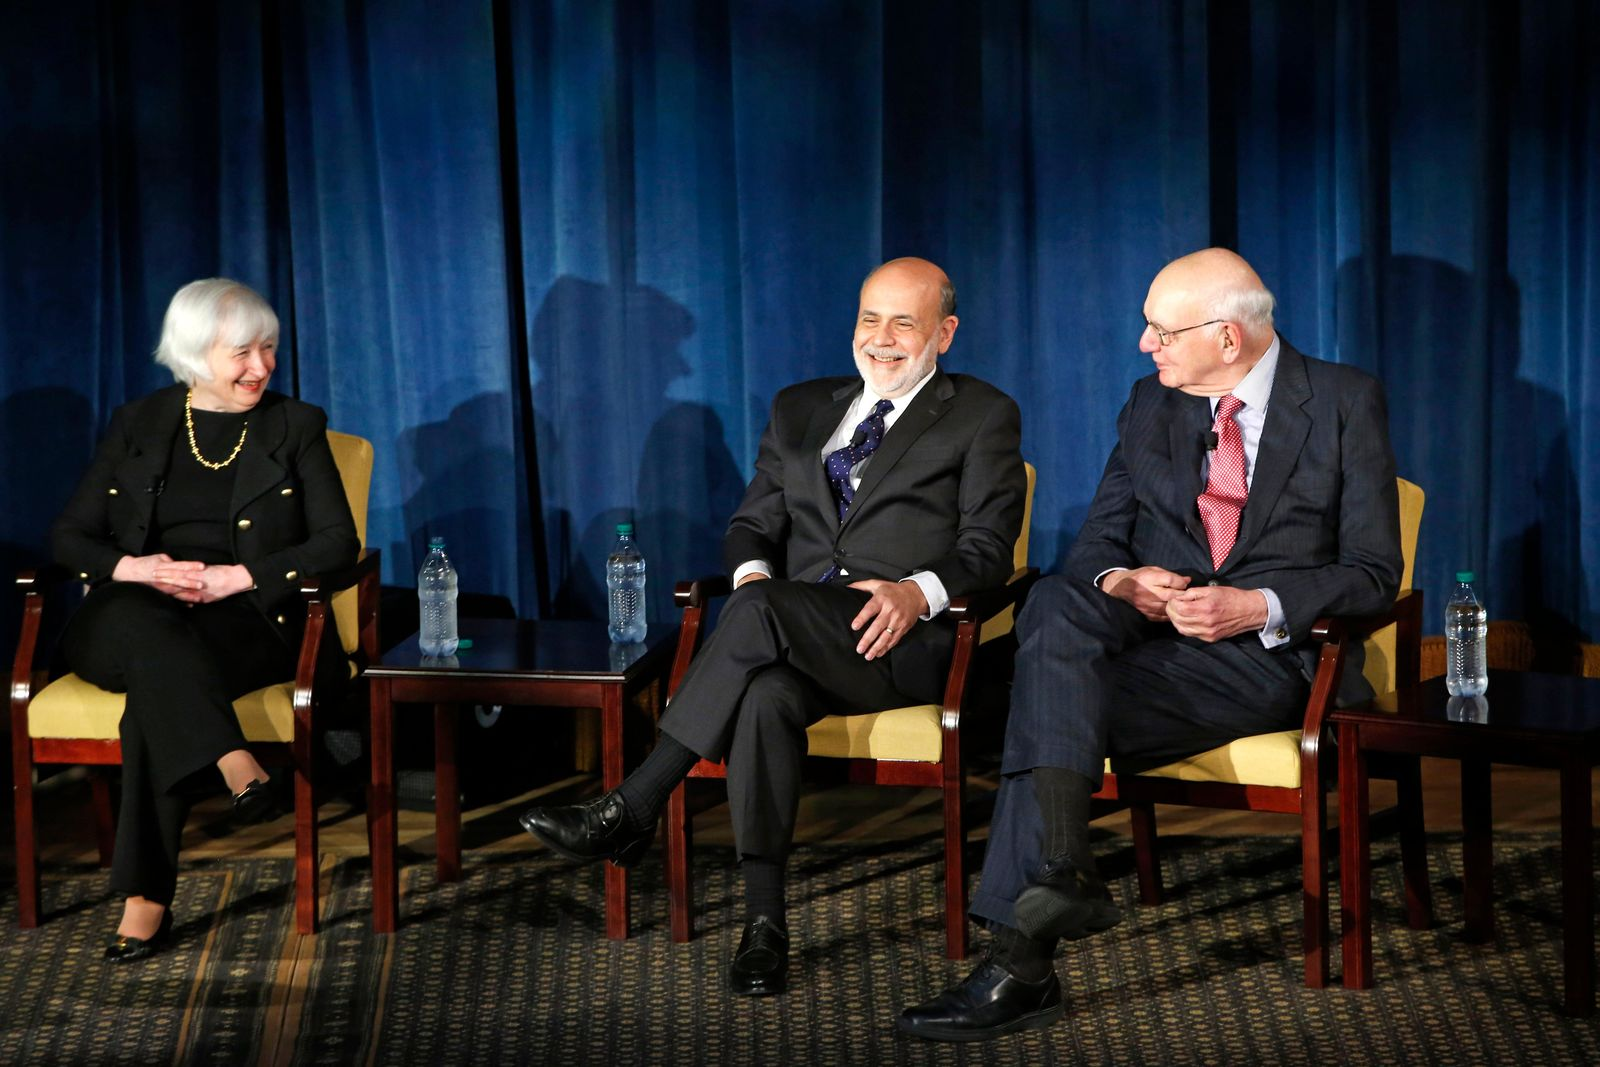 FILE - In this April 7, 2016, file photo Federal Reserve chair Janet Yellen, left, and former Federal Reserve chairs Ben Bernanke, center, and Paul Volcker, right, react as they listen to former Fed Chair Alan Greenspan appearing via video conference, during a panel discussion in New York. Volcker, the former Federal Reserve chairman died on Sunday, Dec. 8, 2019, according to his office, He was 92.{ }(AP Photo/Kathy Willens, File)